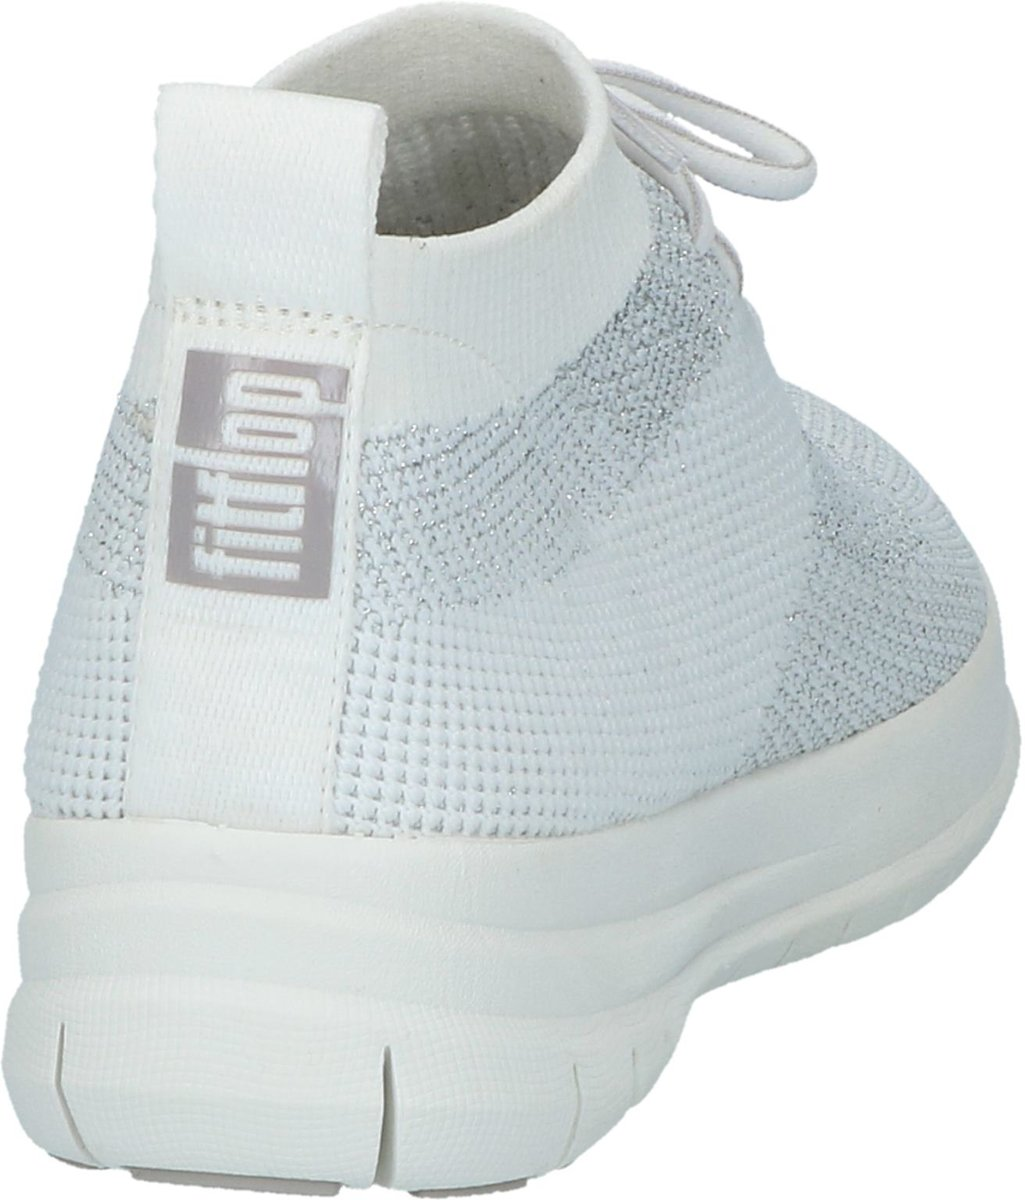 FitFlop Uberknit Slip On High Top Sneaker Sneaker hoog gekleed Dames Maat 37 Wit J30 567 Metallic SilverUrban White